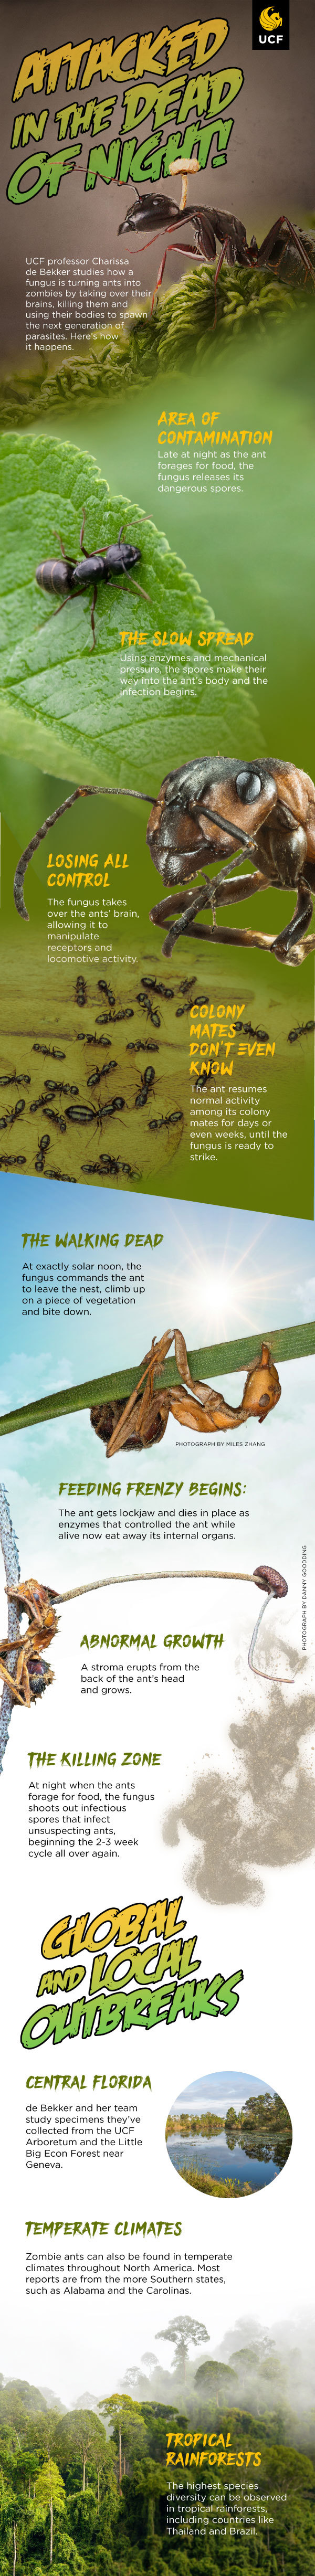 zombie ant infographic, titled 'attacked in the dead of night'